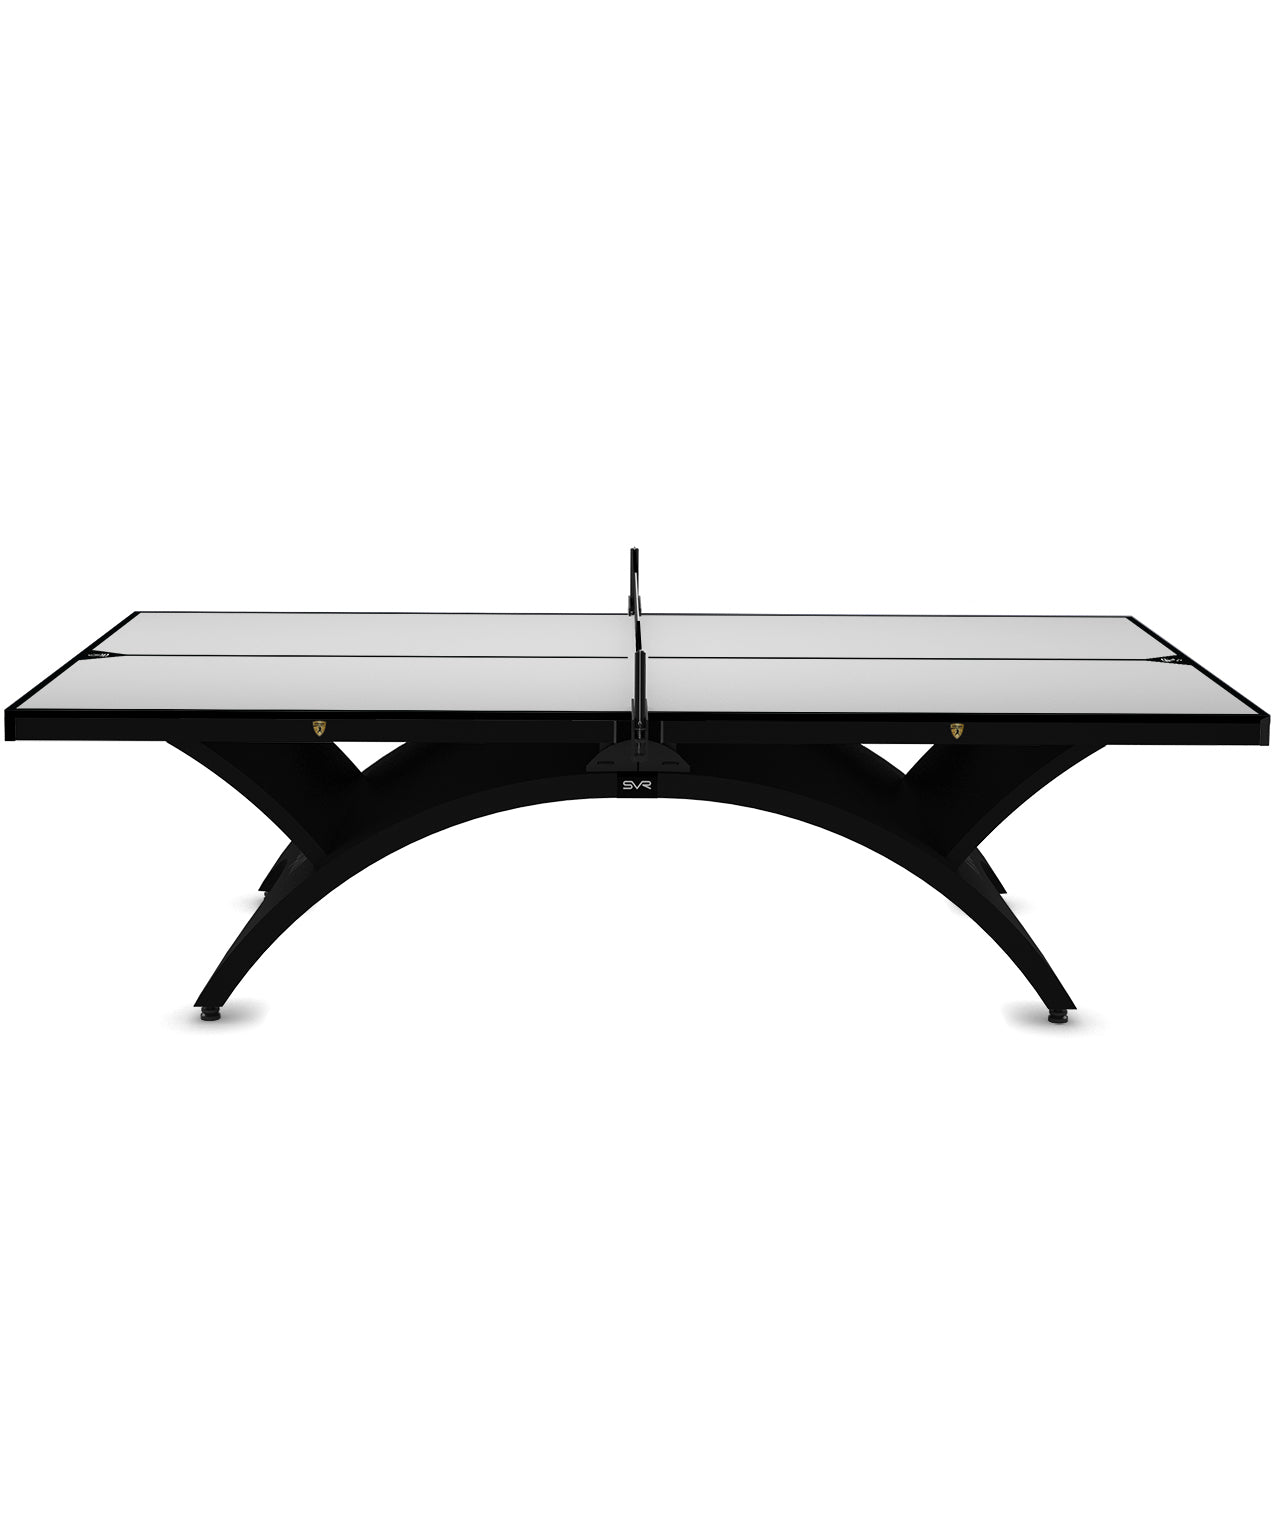 Killerspin Revolution SVR Table Tennis Table 24